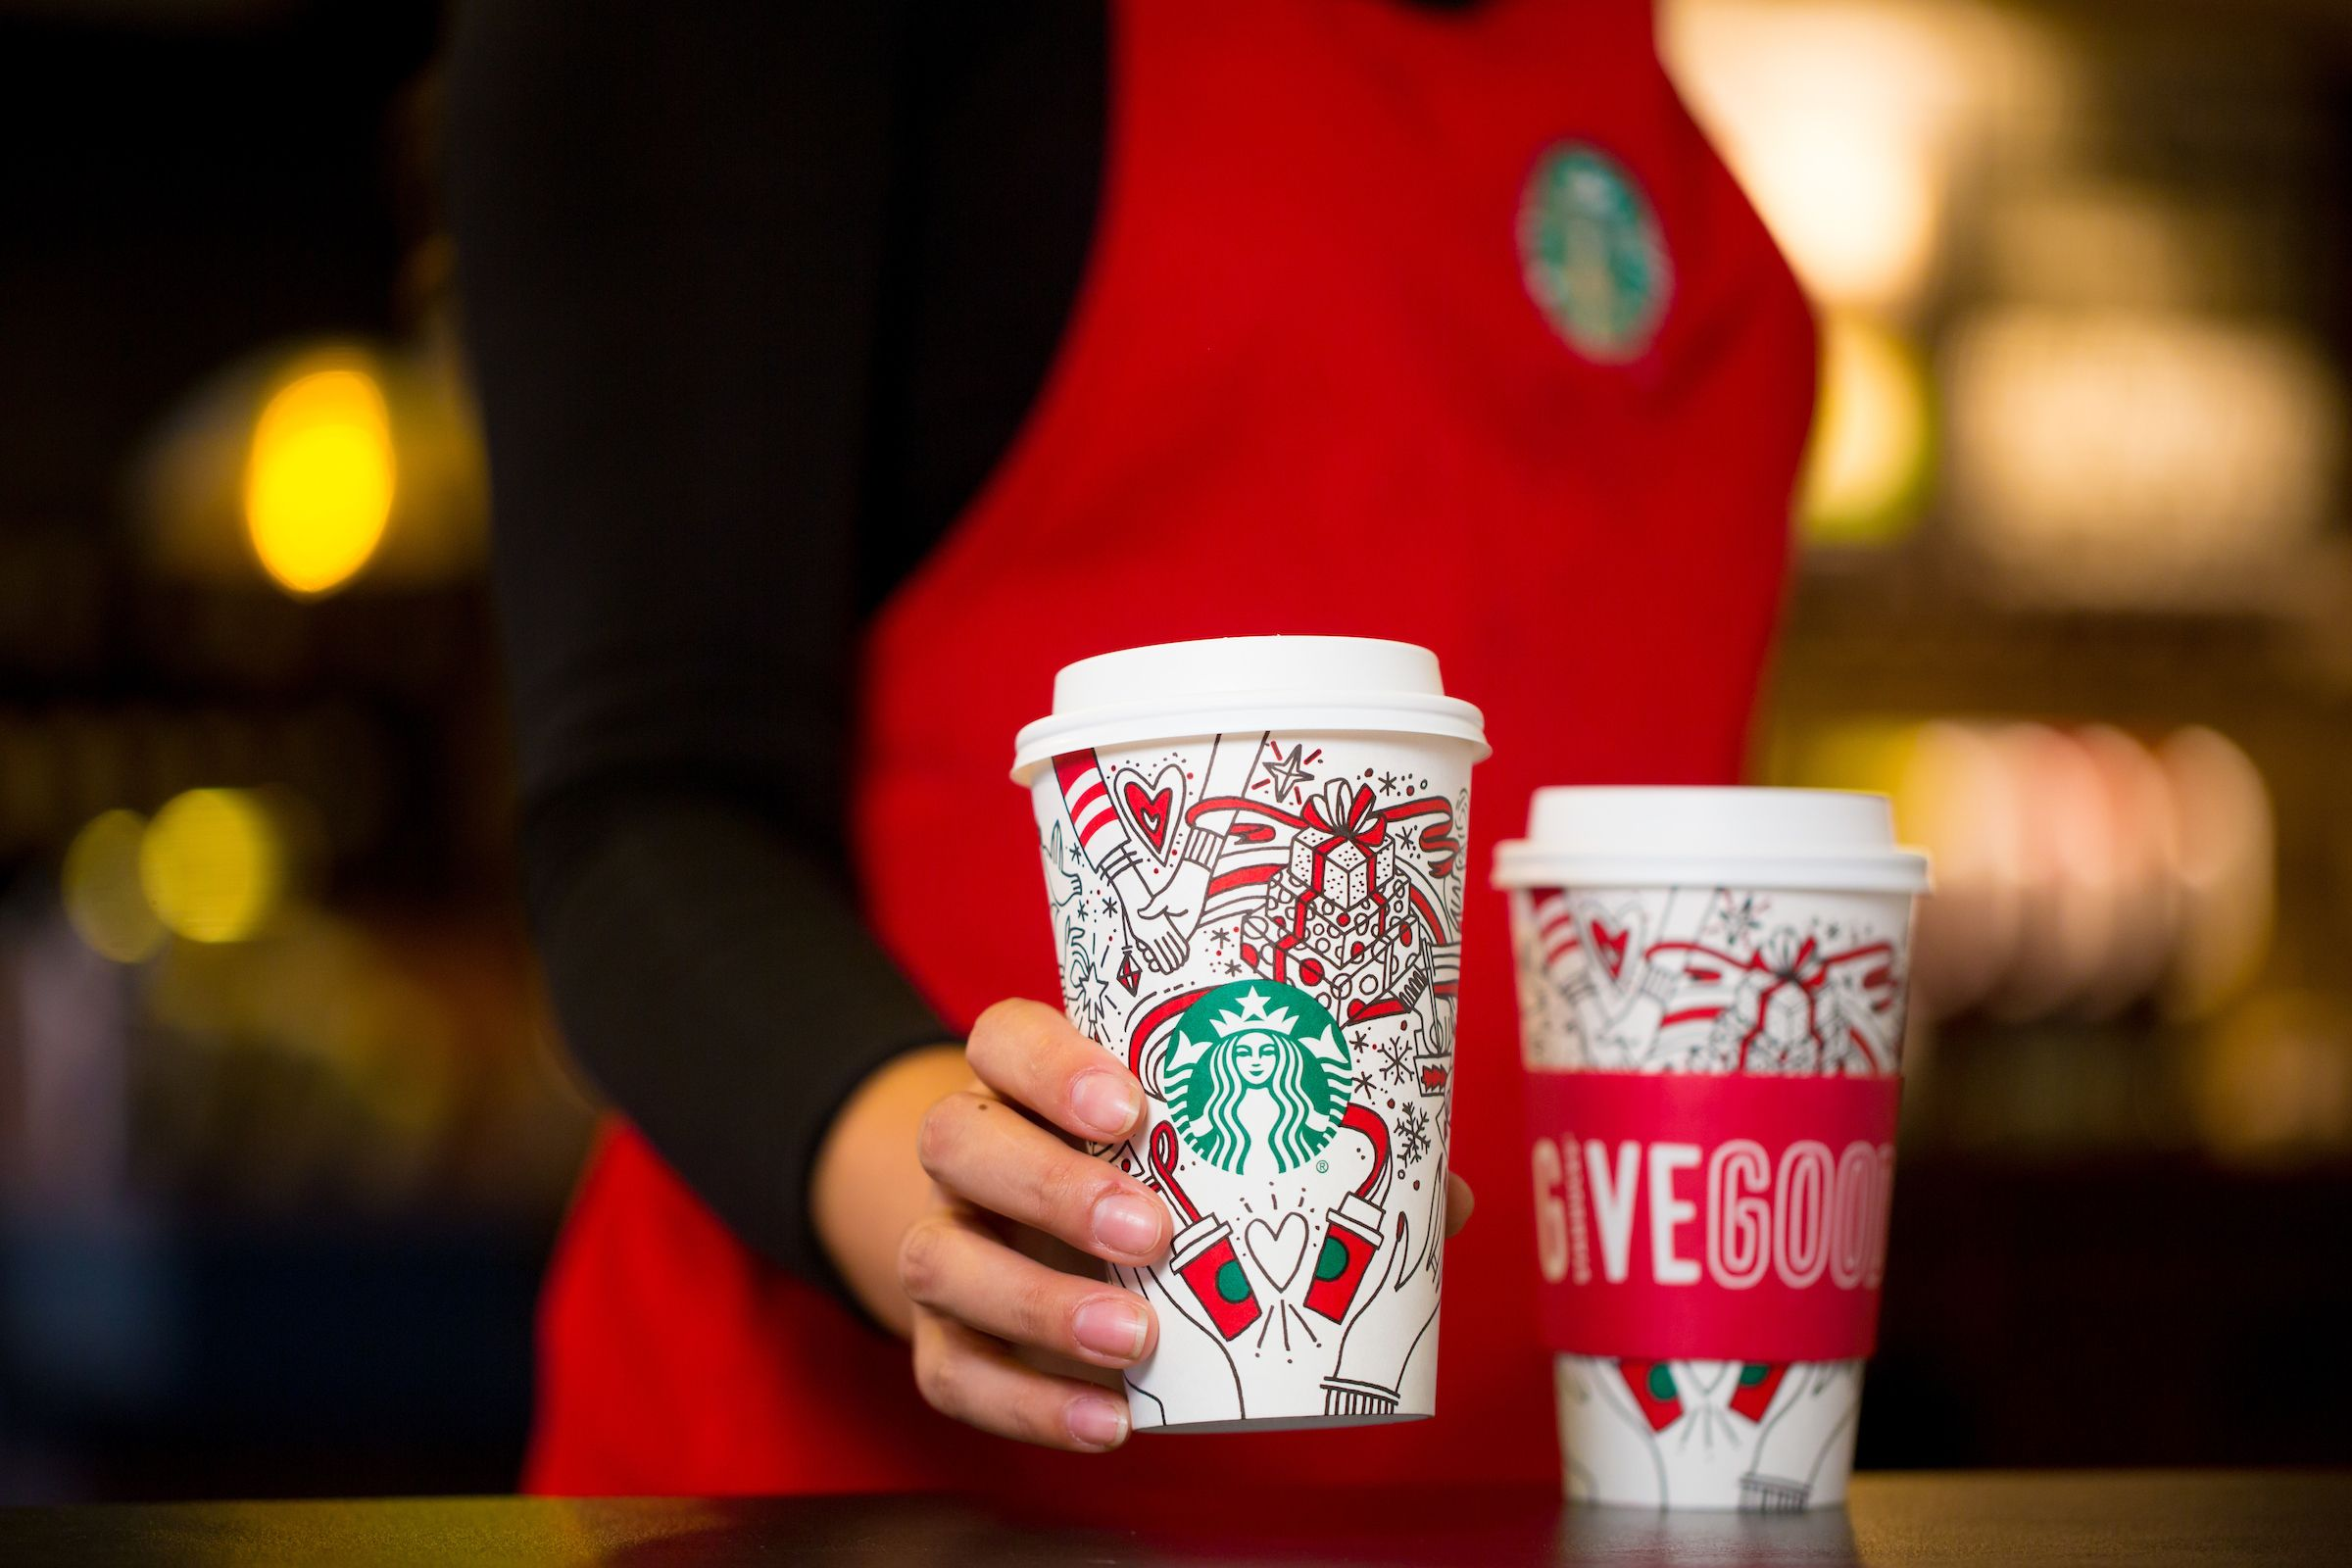 Starbucks red cup is no longer red